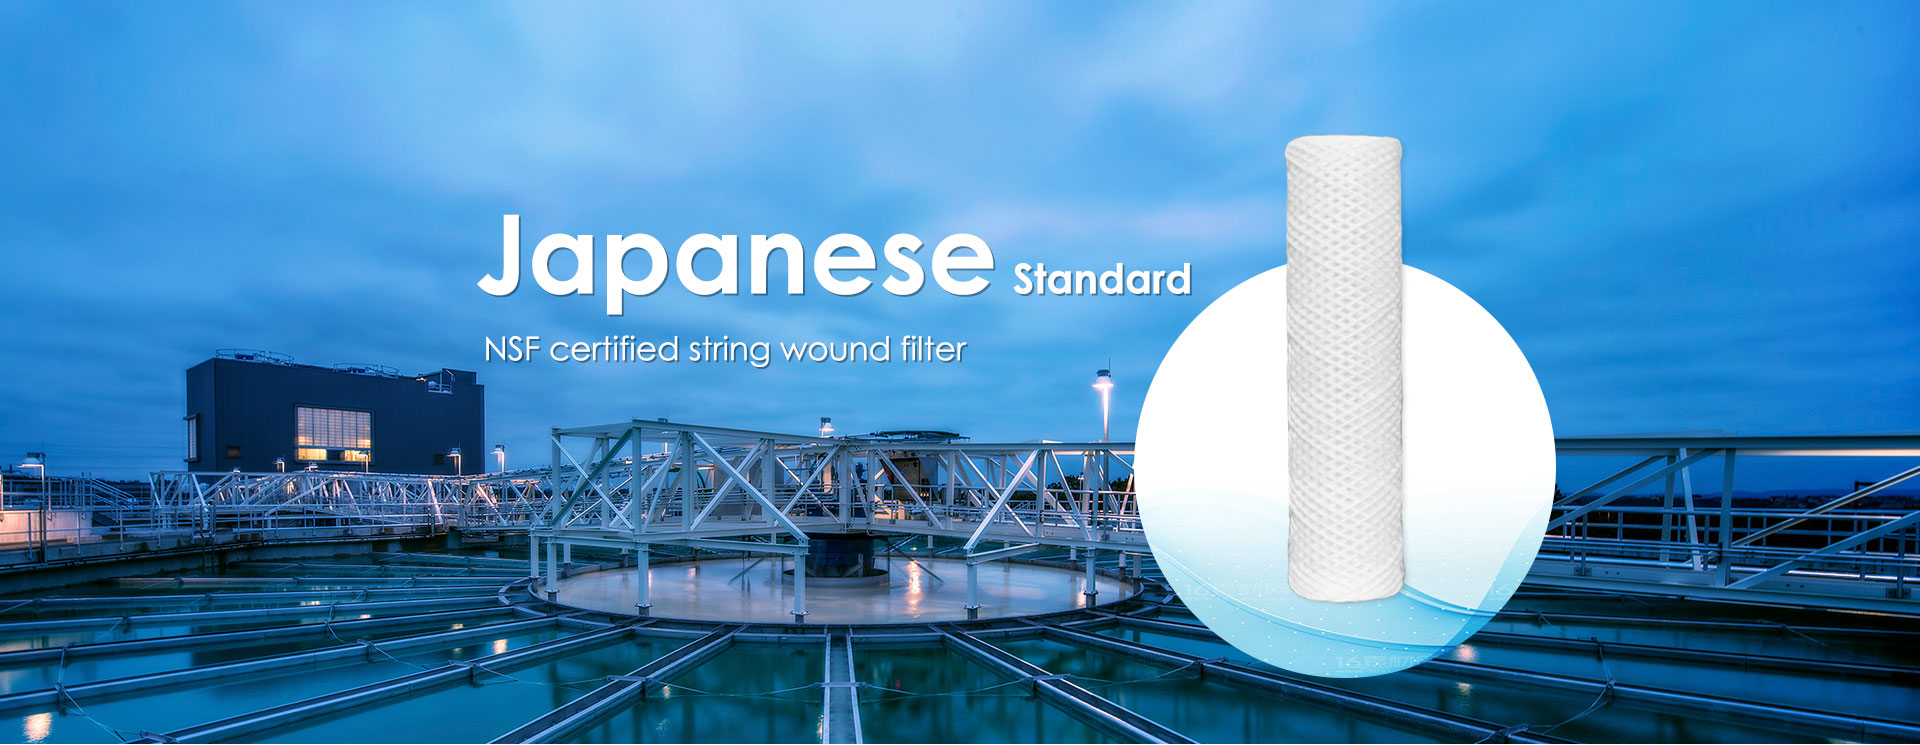 String wound filters JP series